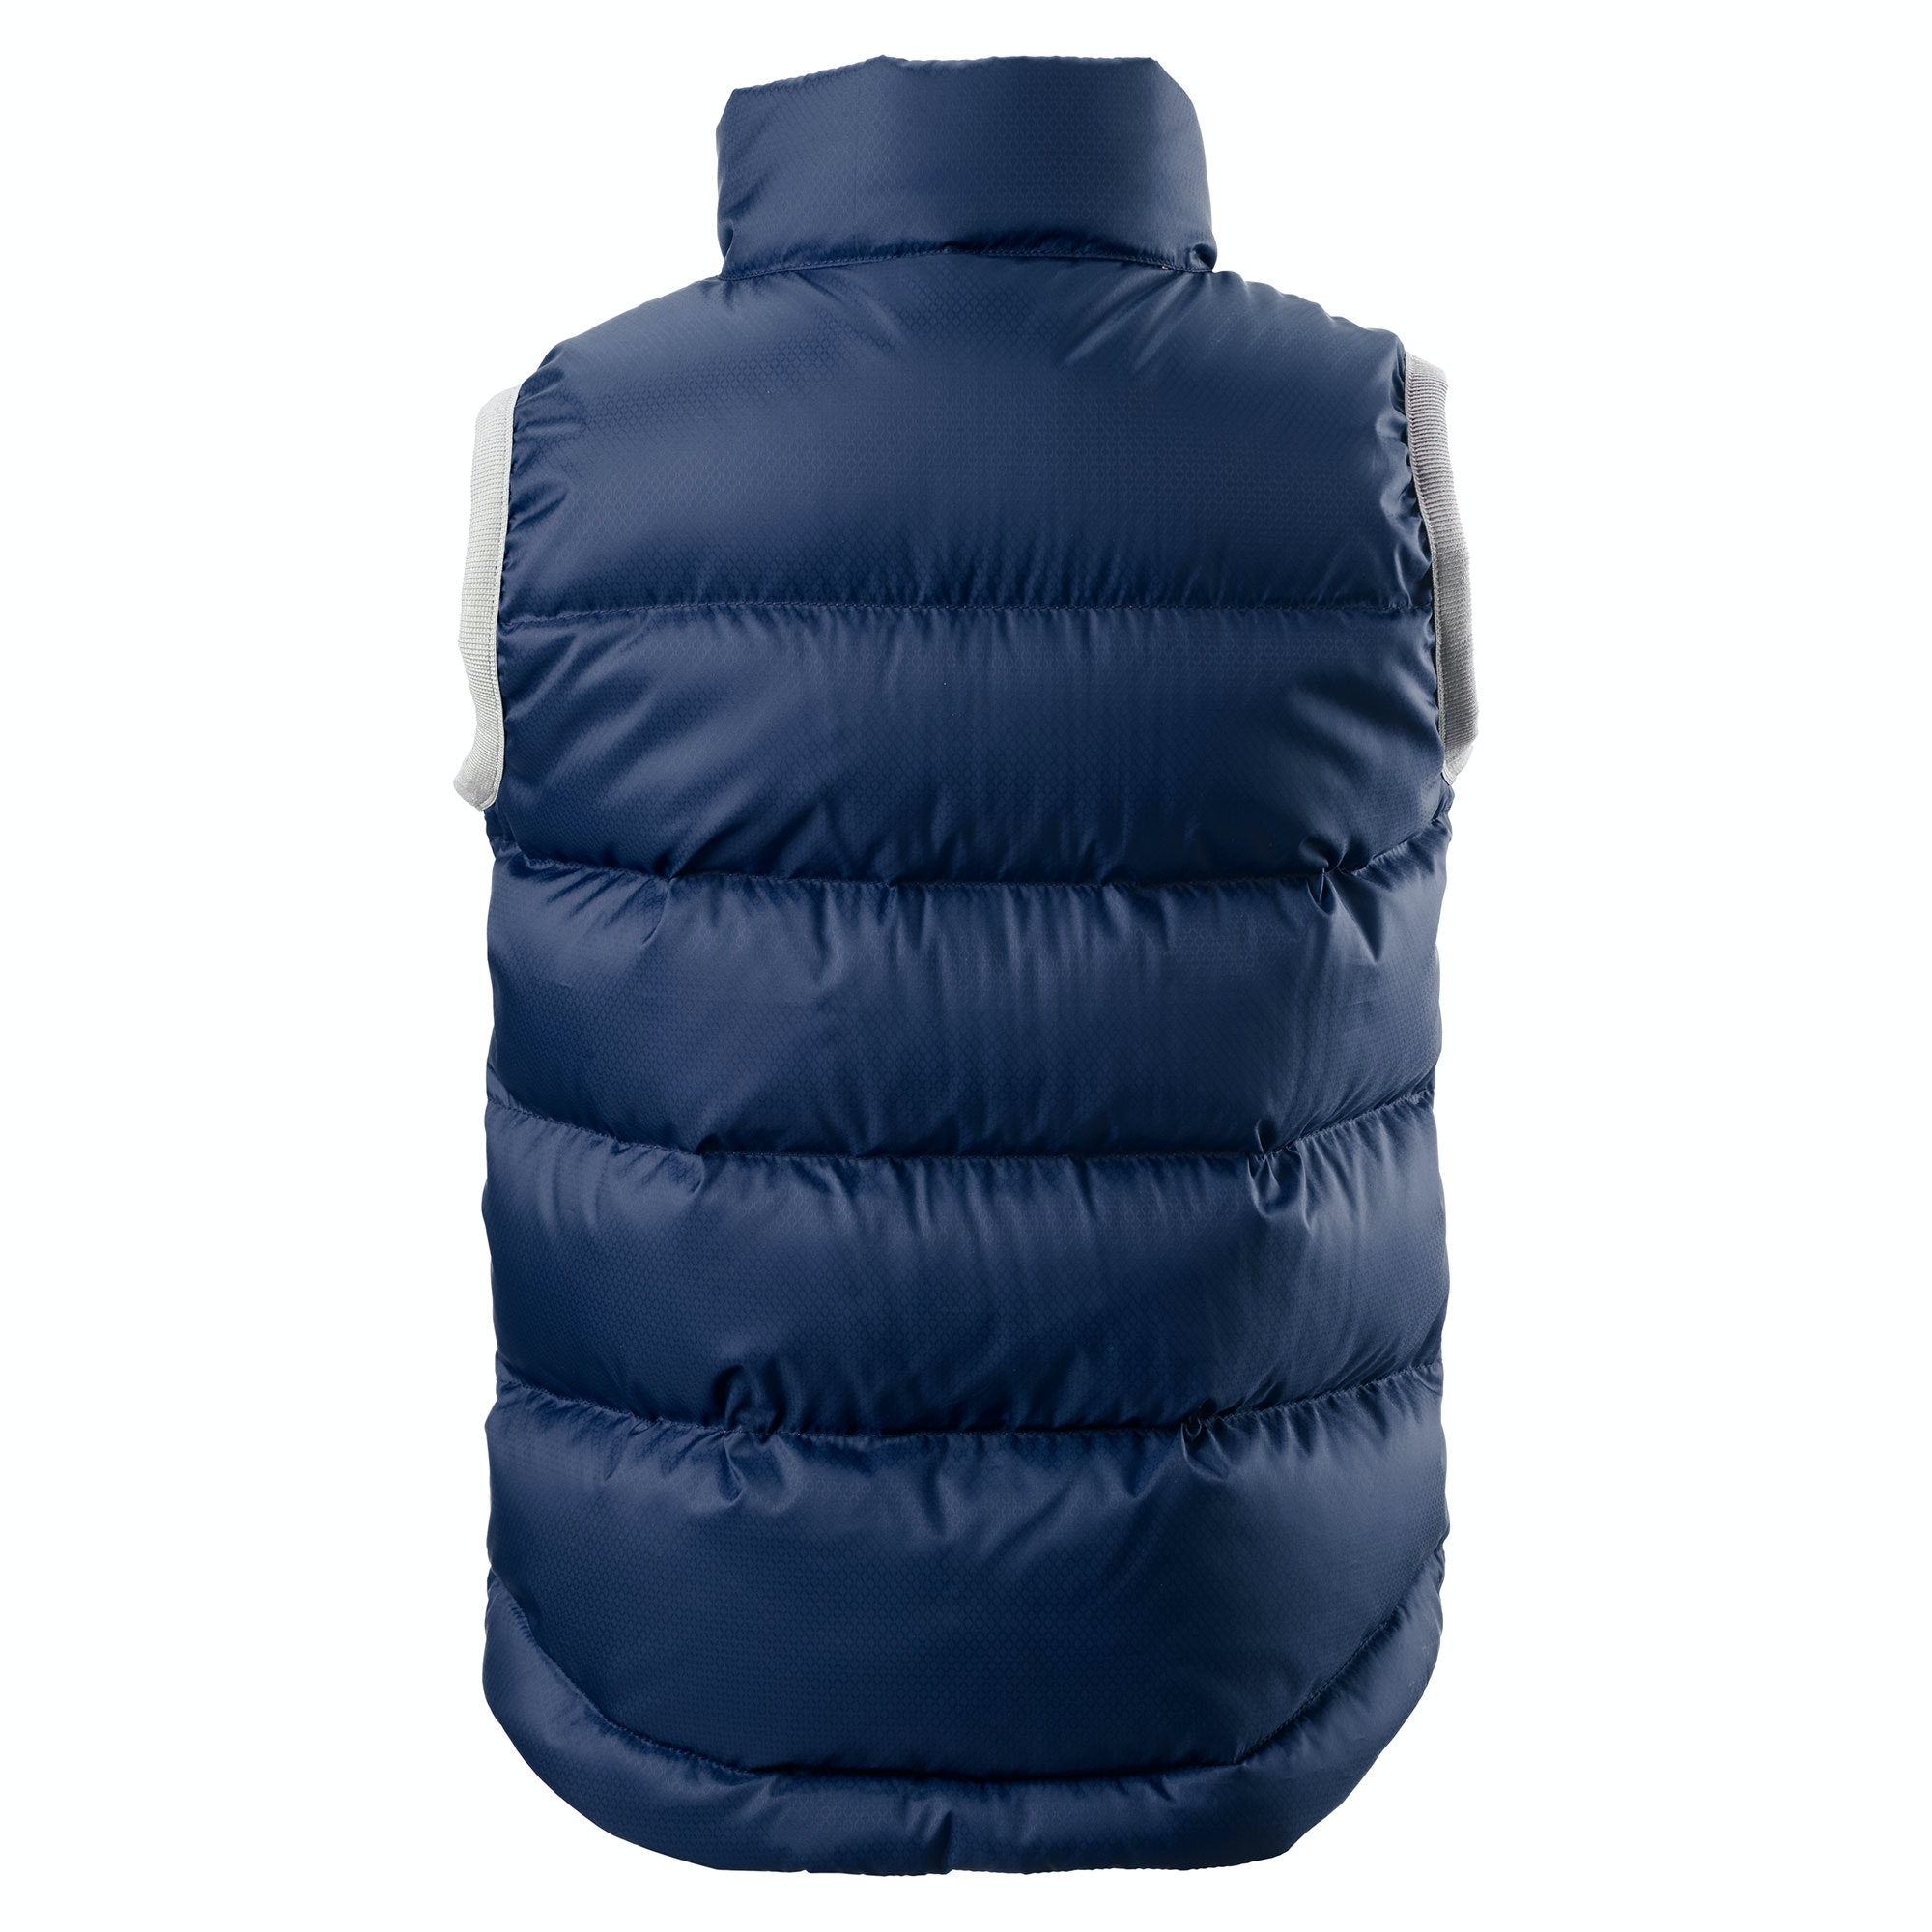 NEW-Kathmandu-Elcho-Kids-039-Boys-039-Girls-039-Warm-Winter-Outdoor-Duck-Down-Puffer-Vest thumbnail 20